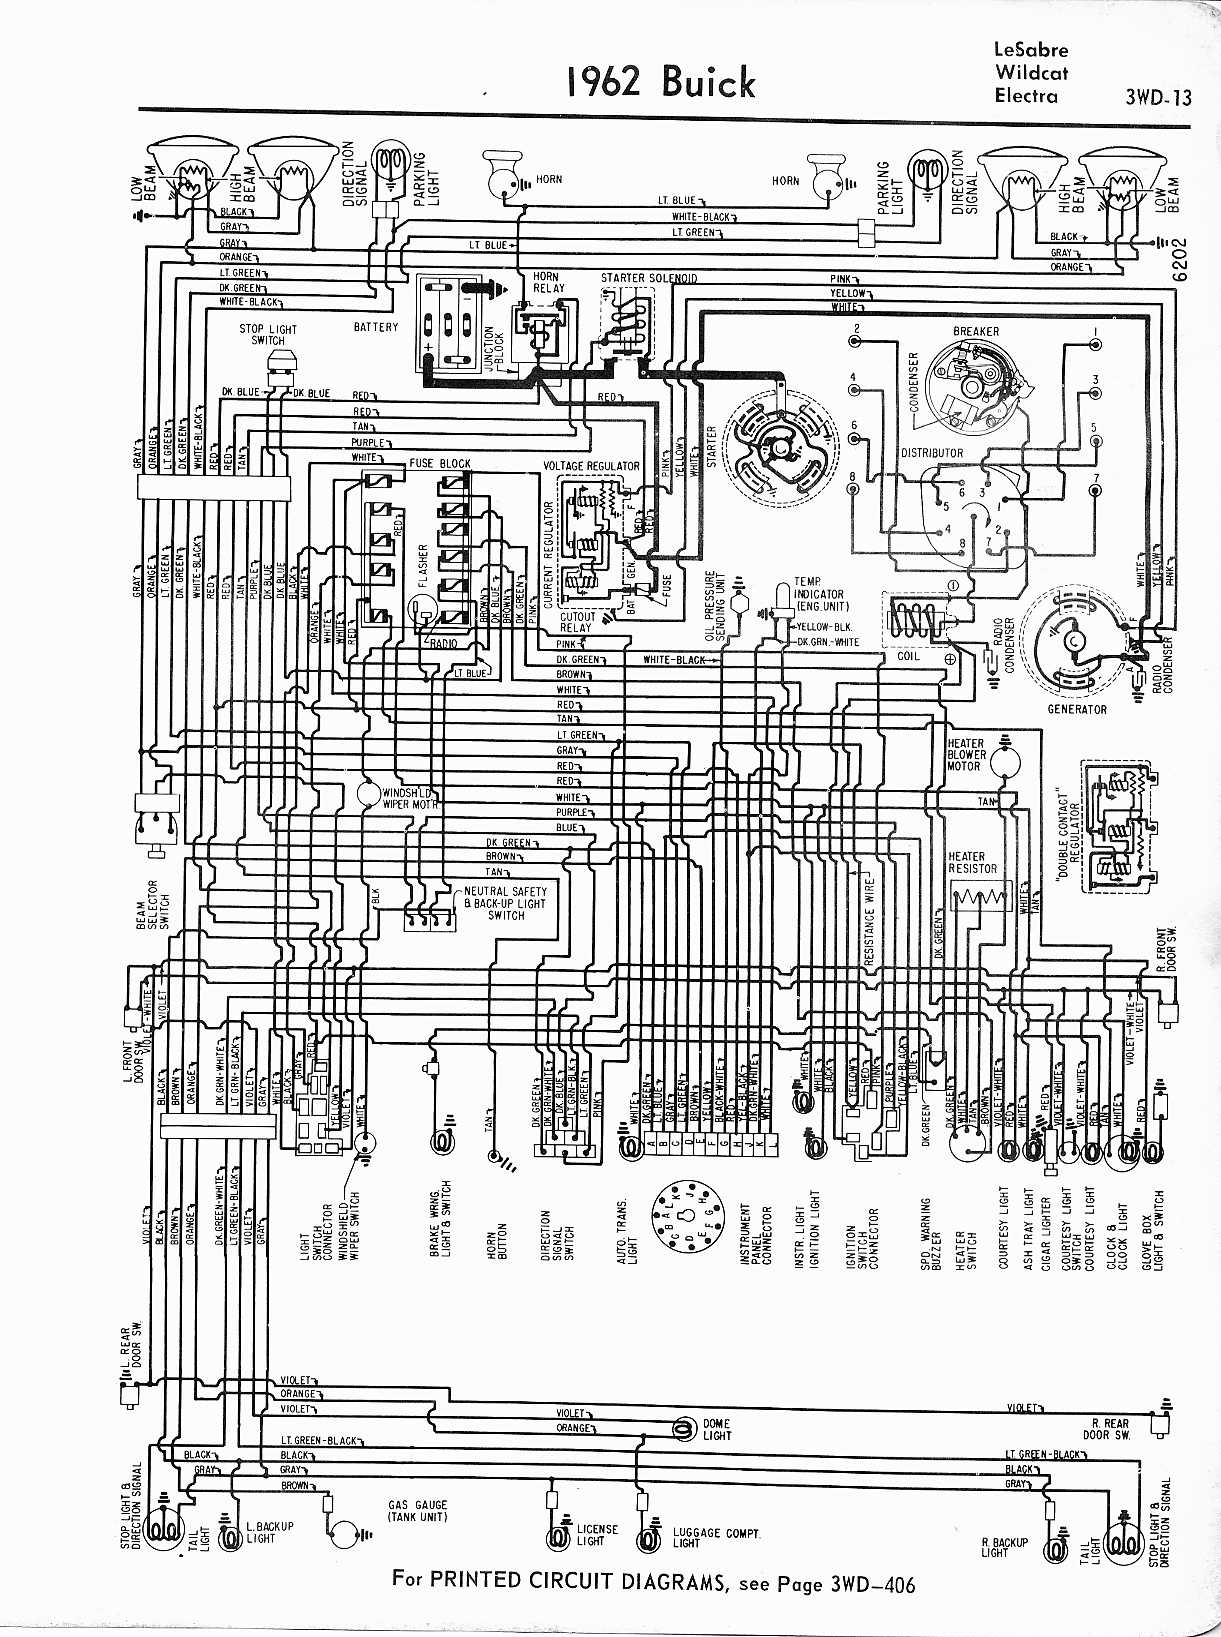 Buick Wiring Diagrams 1957 1965 Volvo Window Motor Diagram 1962 Lesabre Wildcat Electra